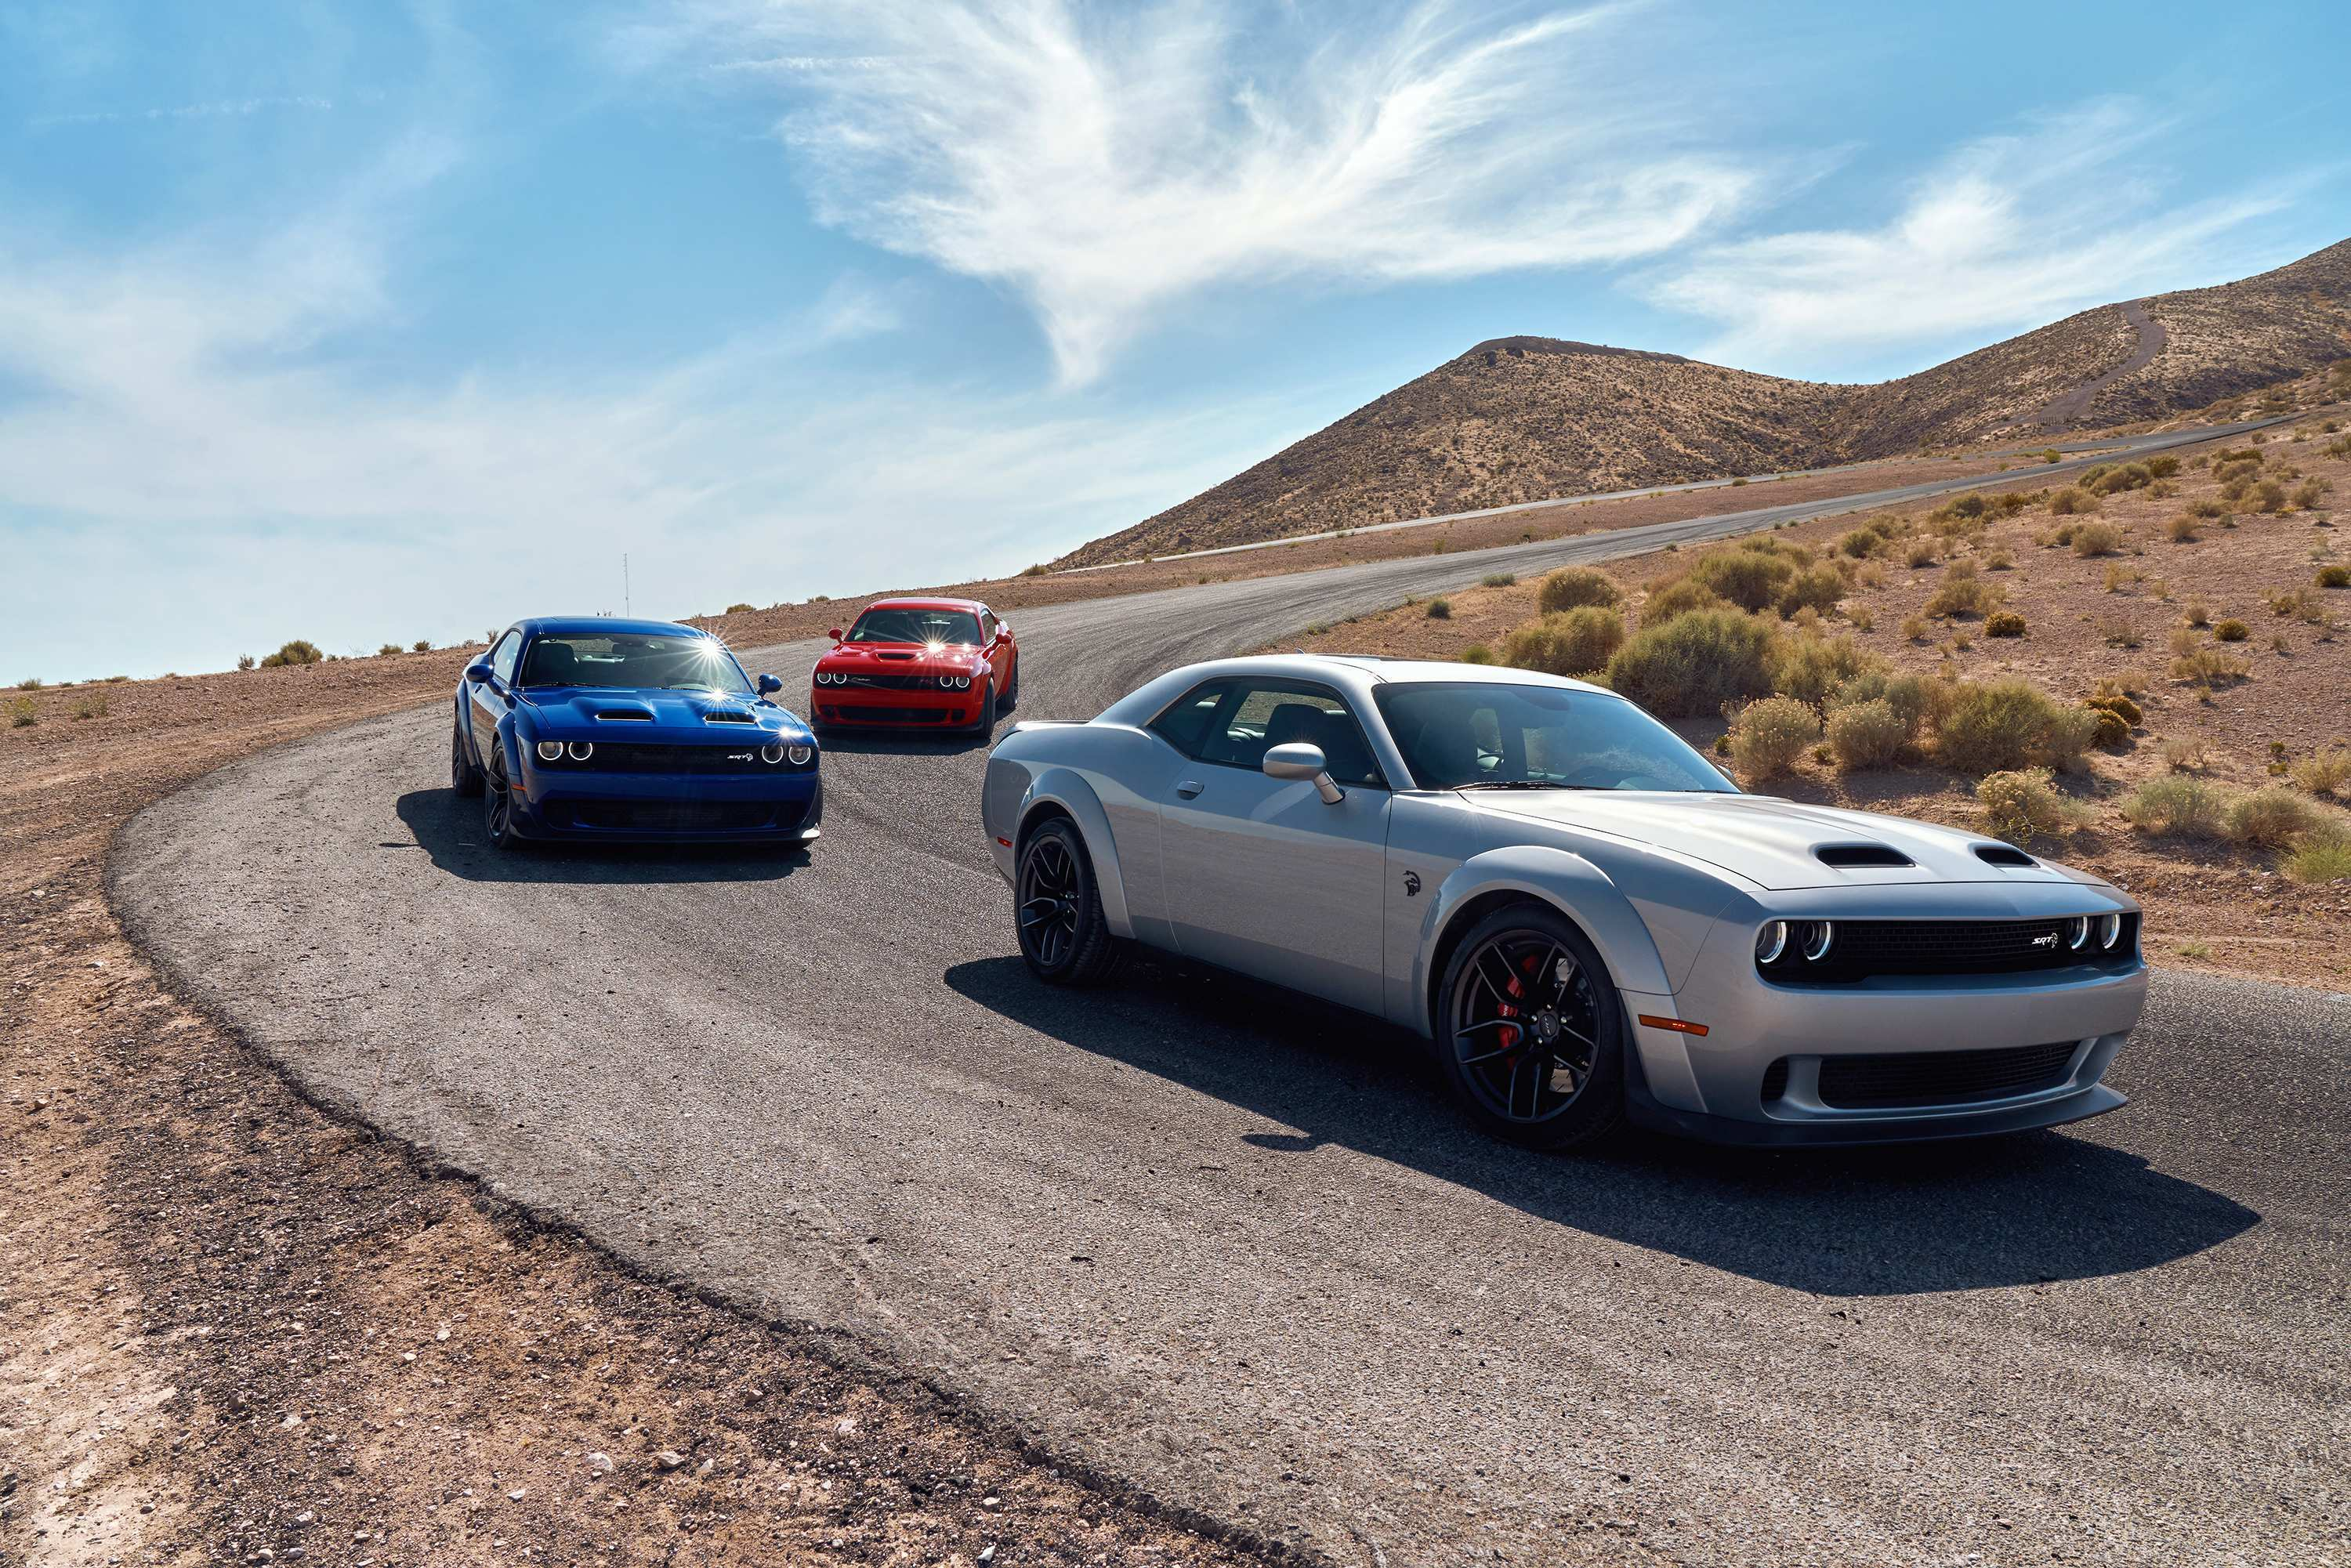 71 Great 2019 Dodge Challenger Hellcat Exterior for 2019 Dodge Challenger Hellcat